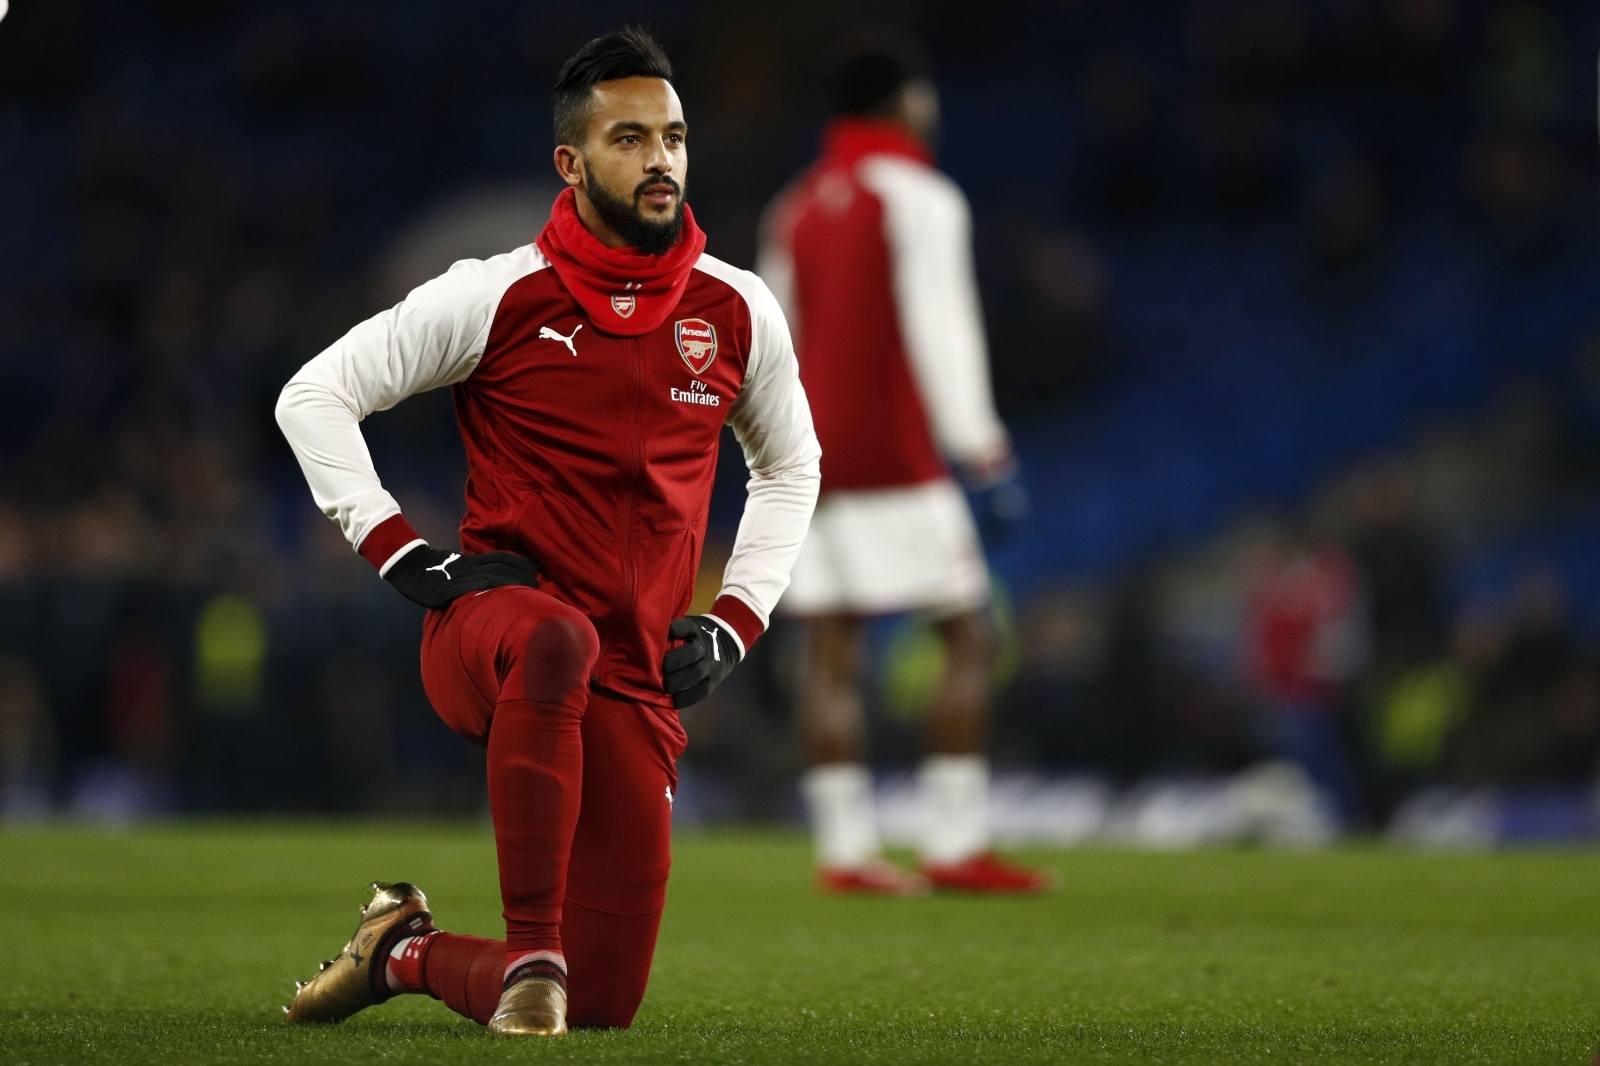 Arsenal's Walcott on verge of Everton move